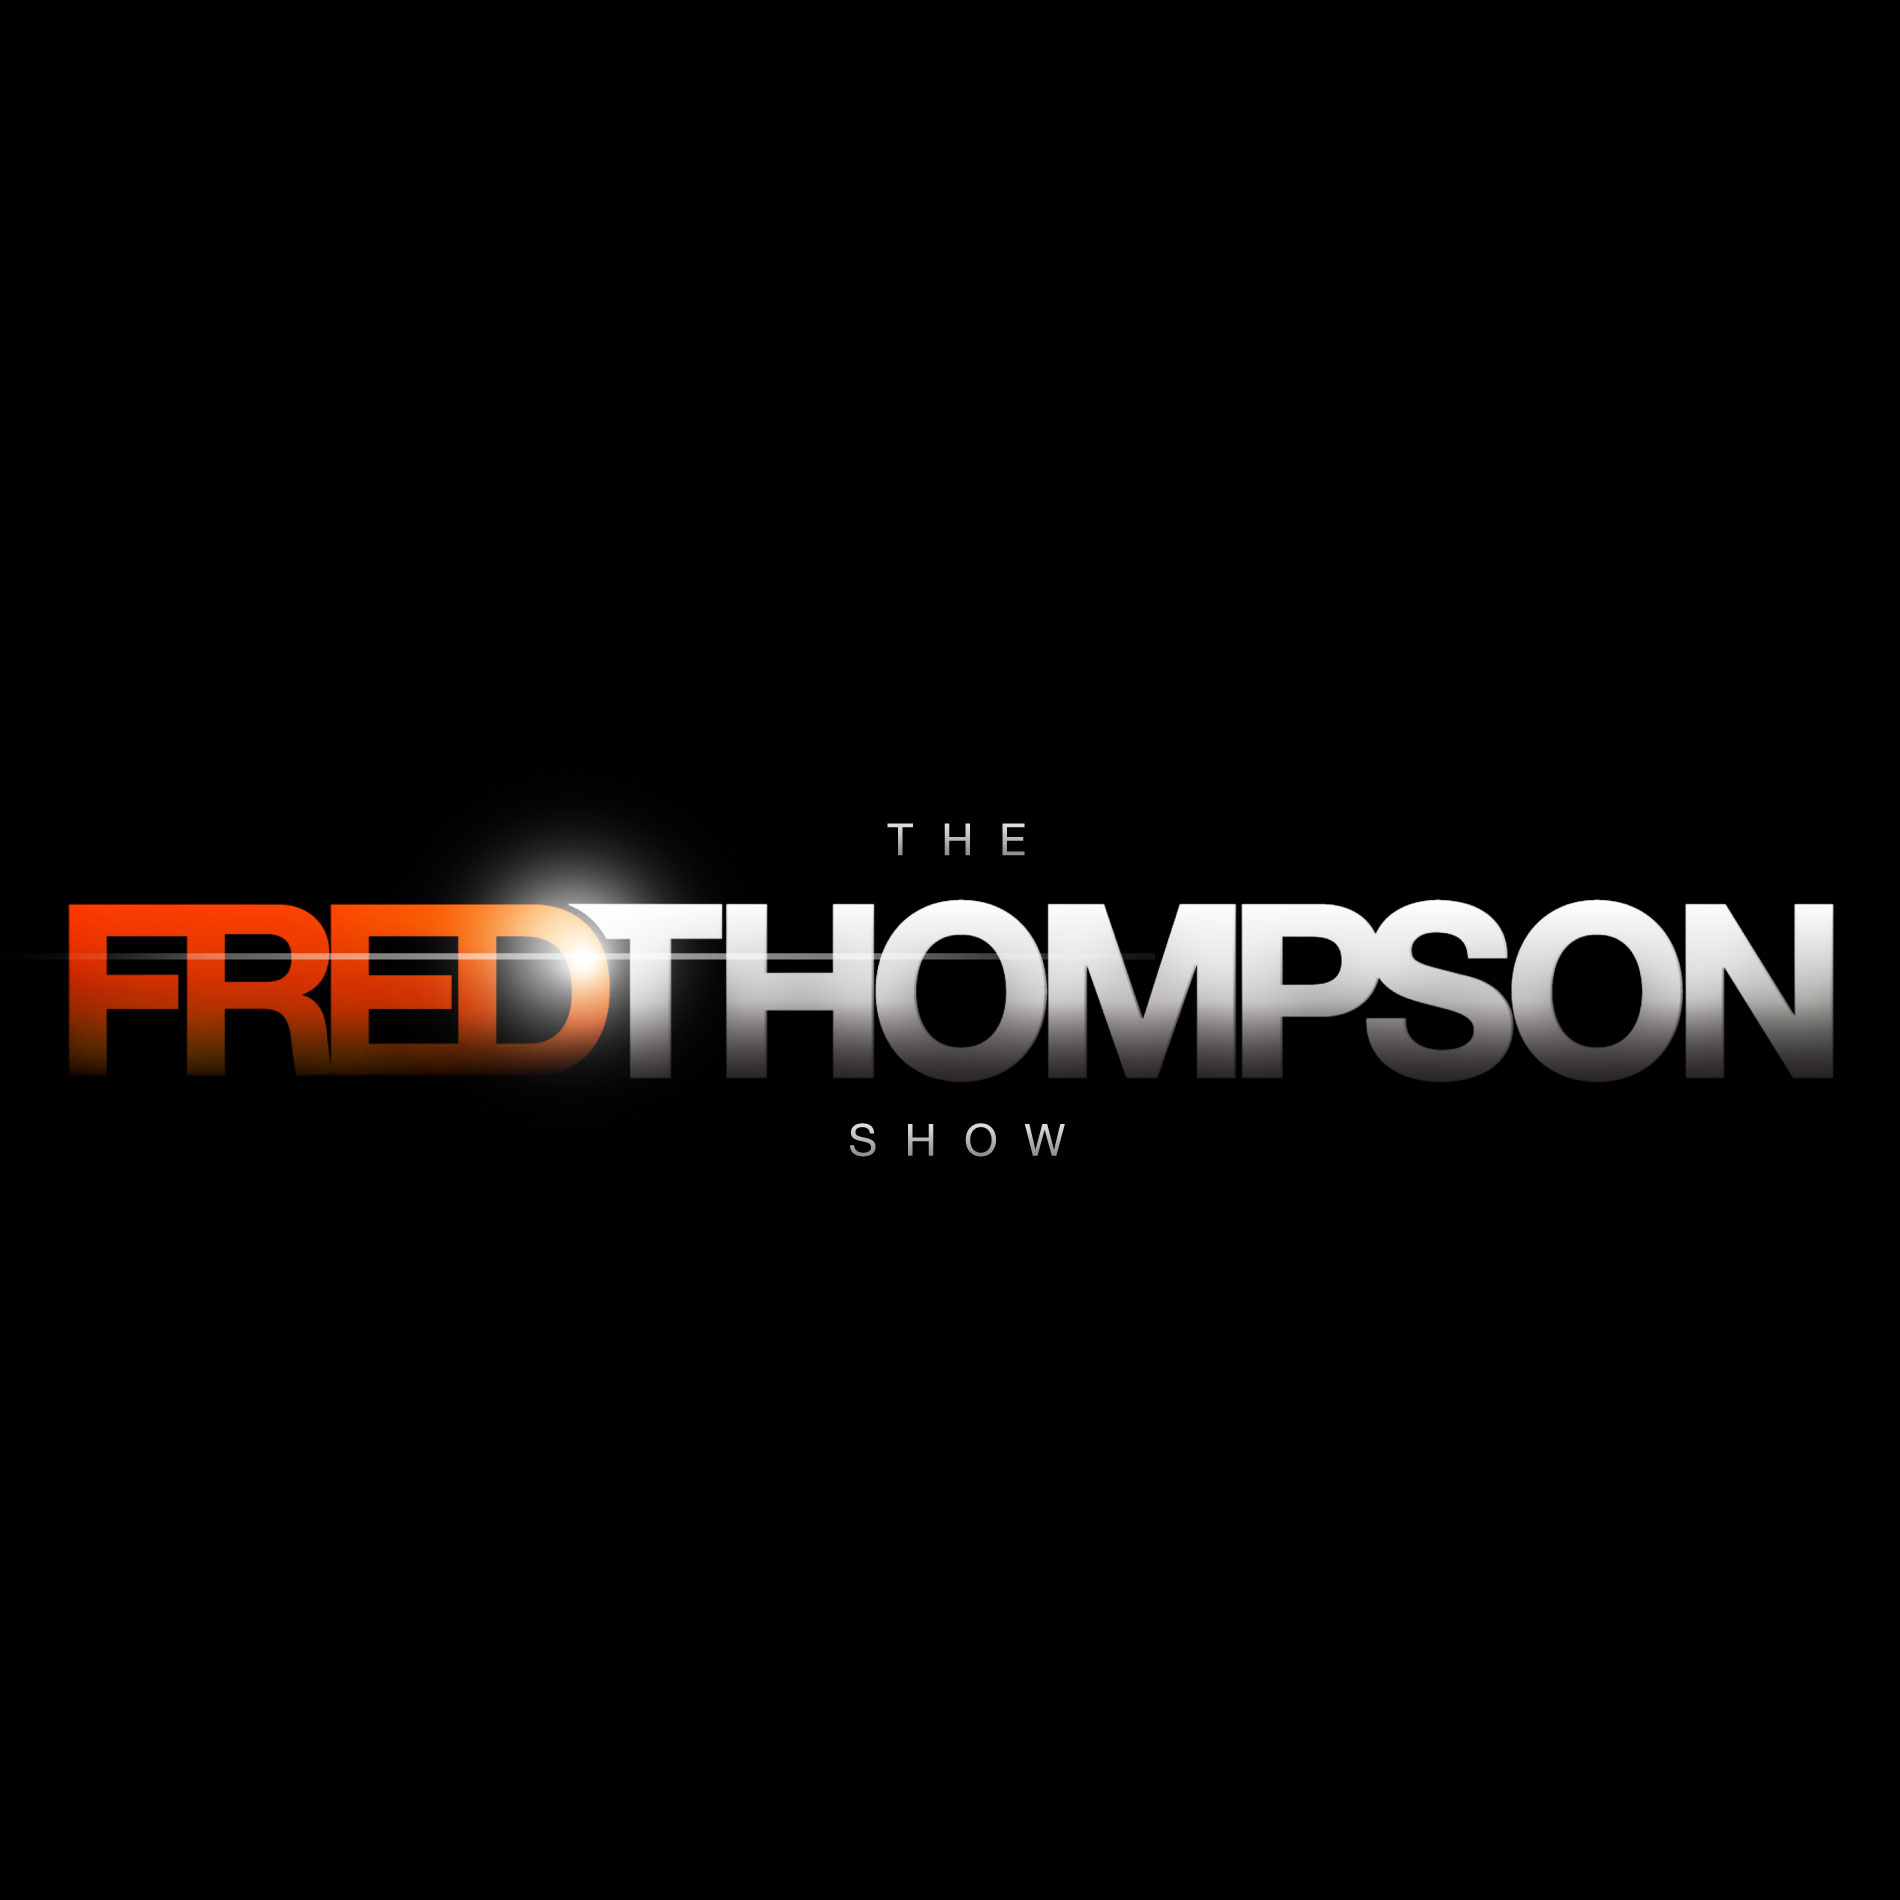 Fred Thompson Show